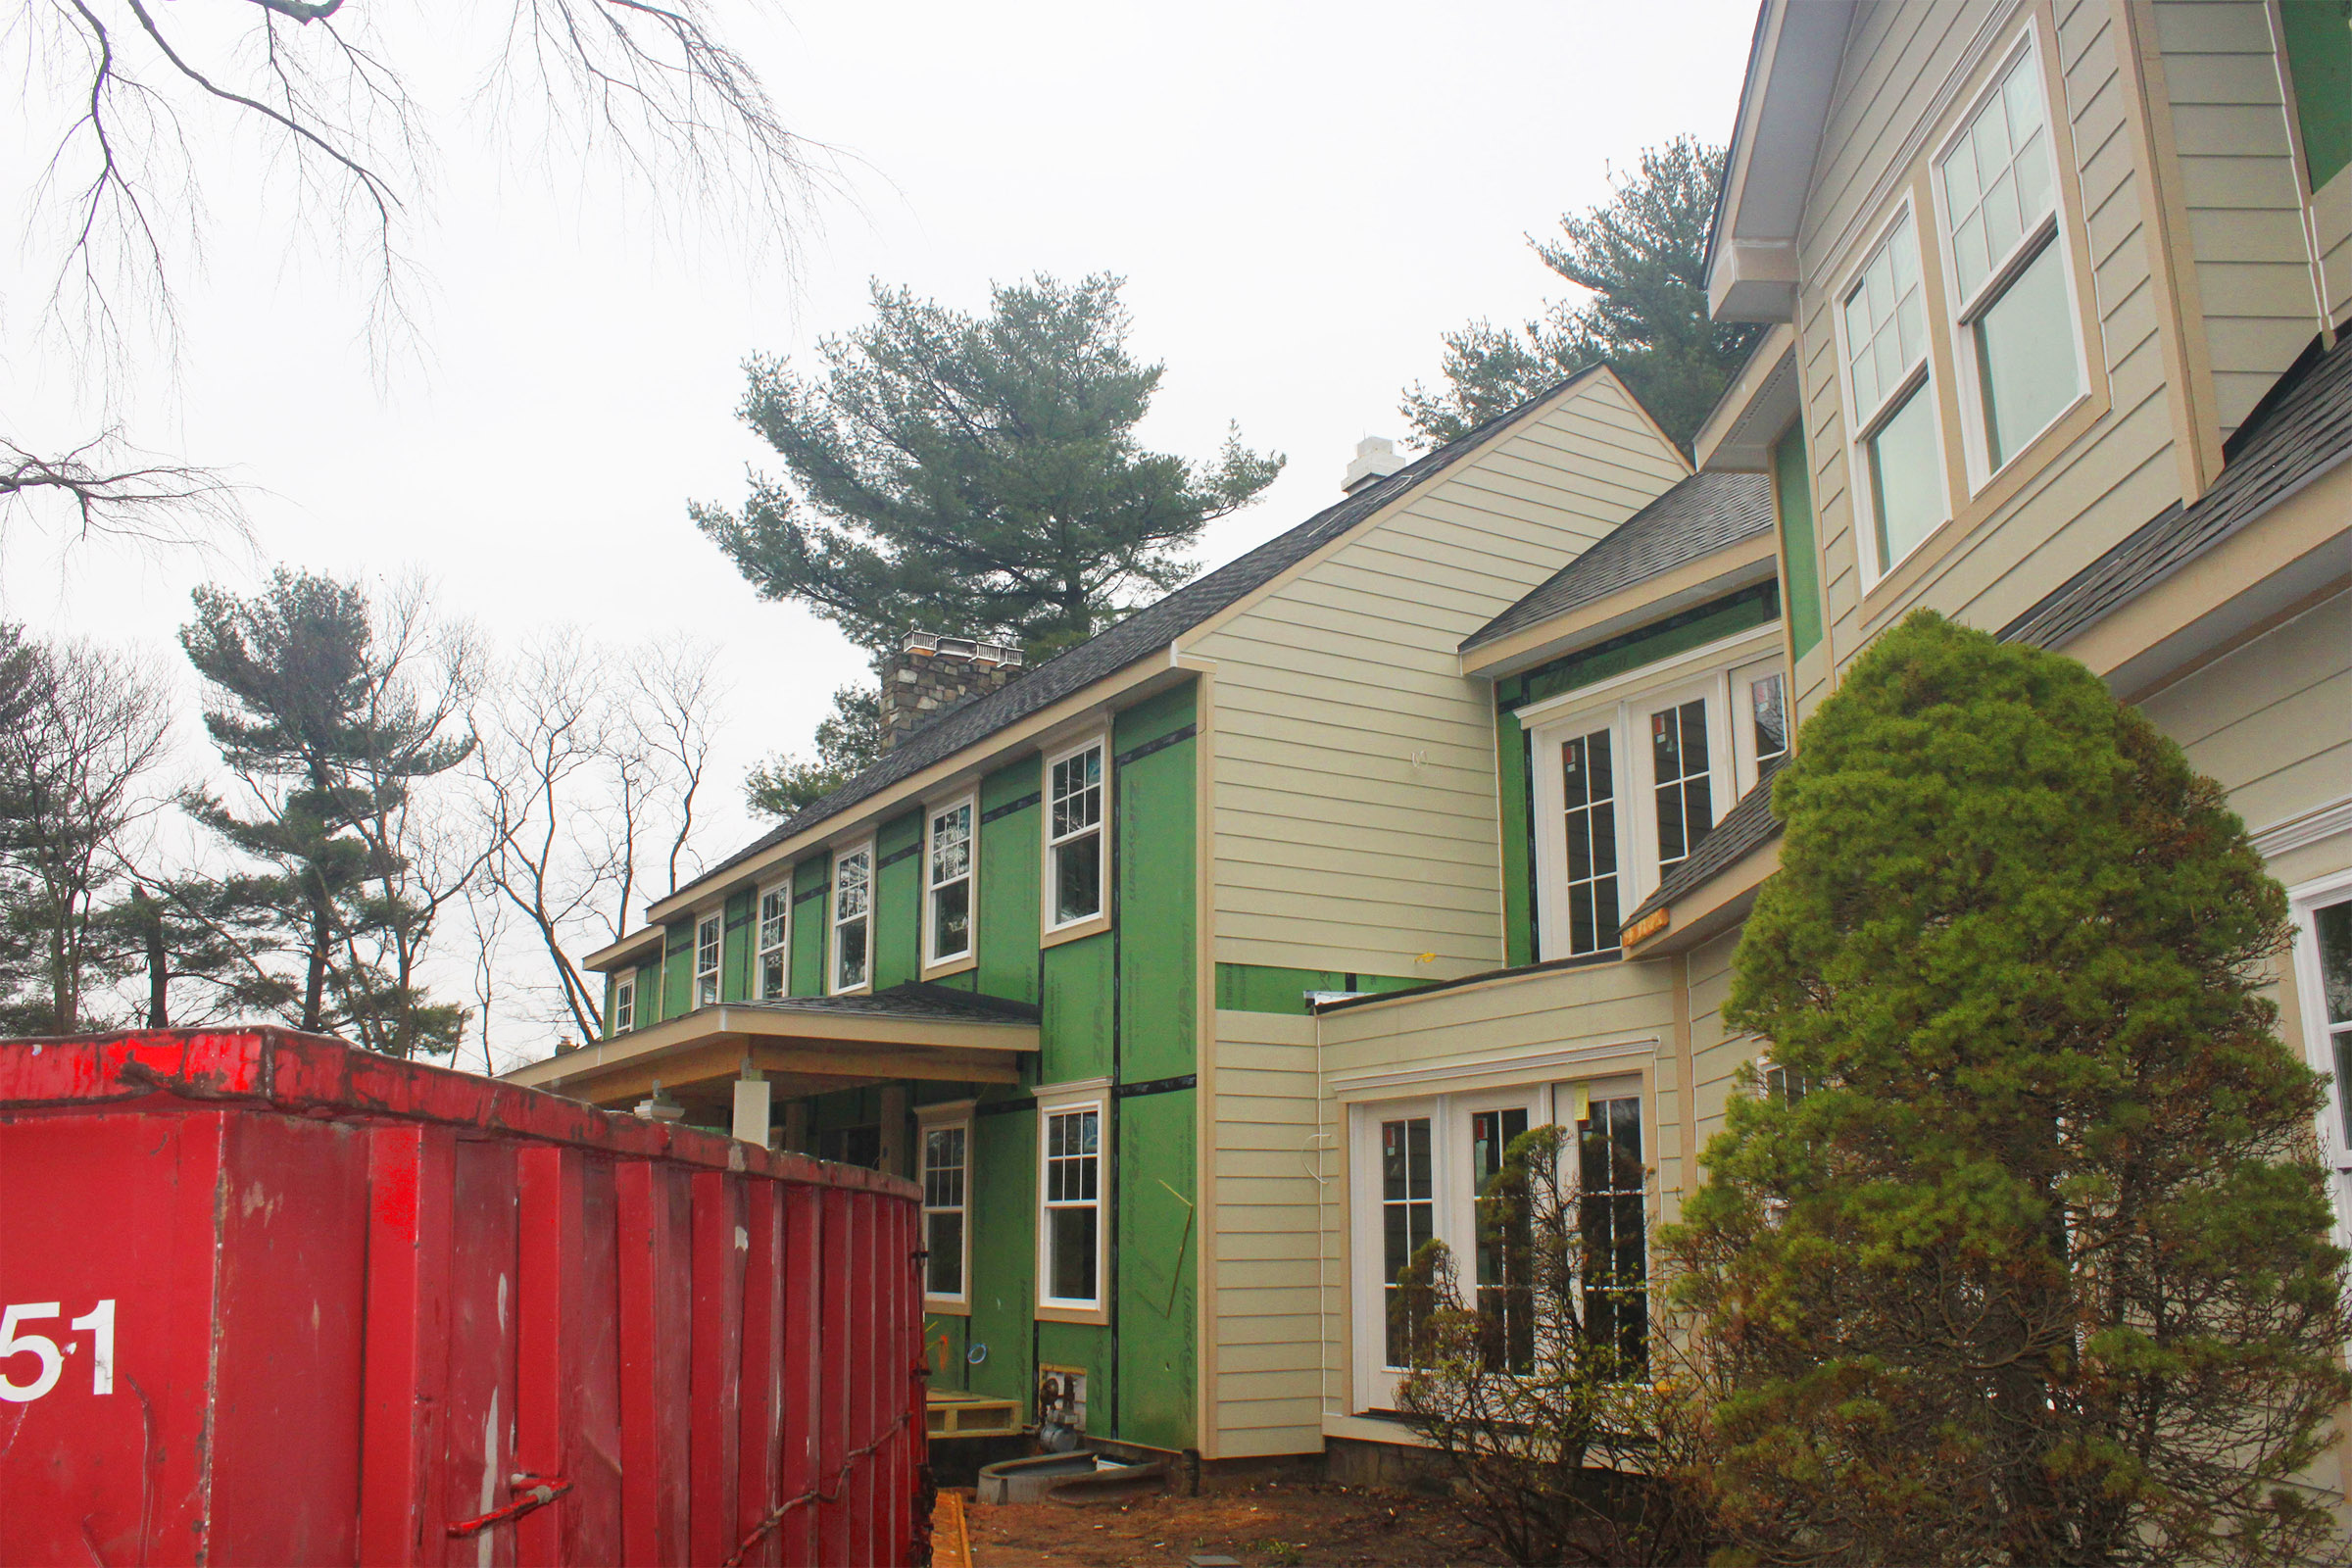 Exterior wall in process of adding siding. The green panels are ZIP sheathing with integrated water barrier.